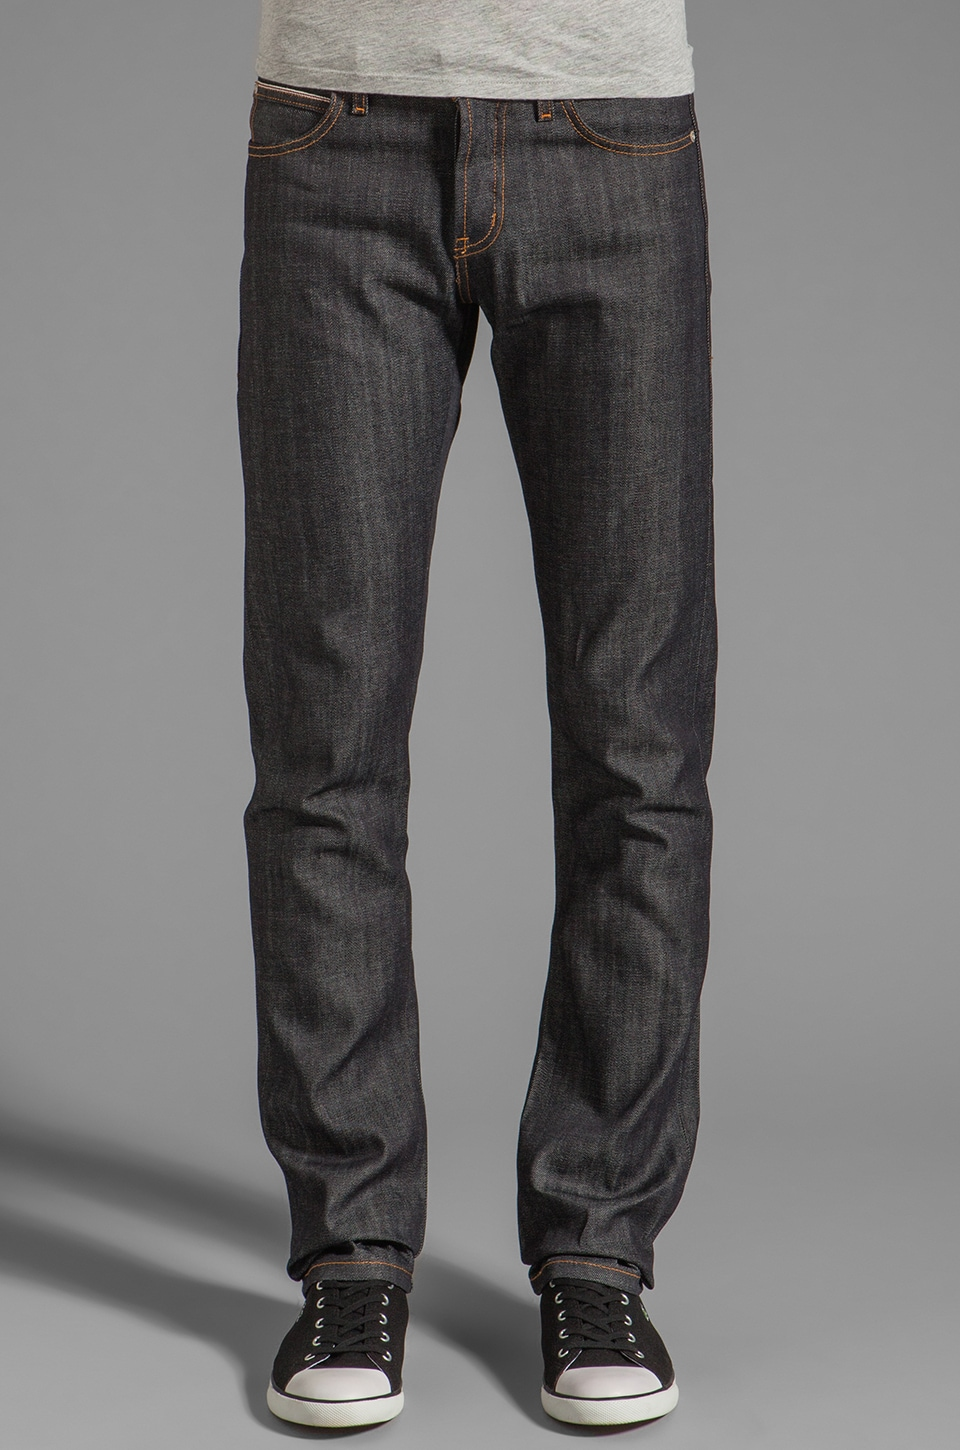 Naked & Famous Denim Skinny Guy 10 oz in Light Weight Selvedge